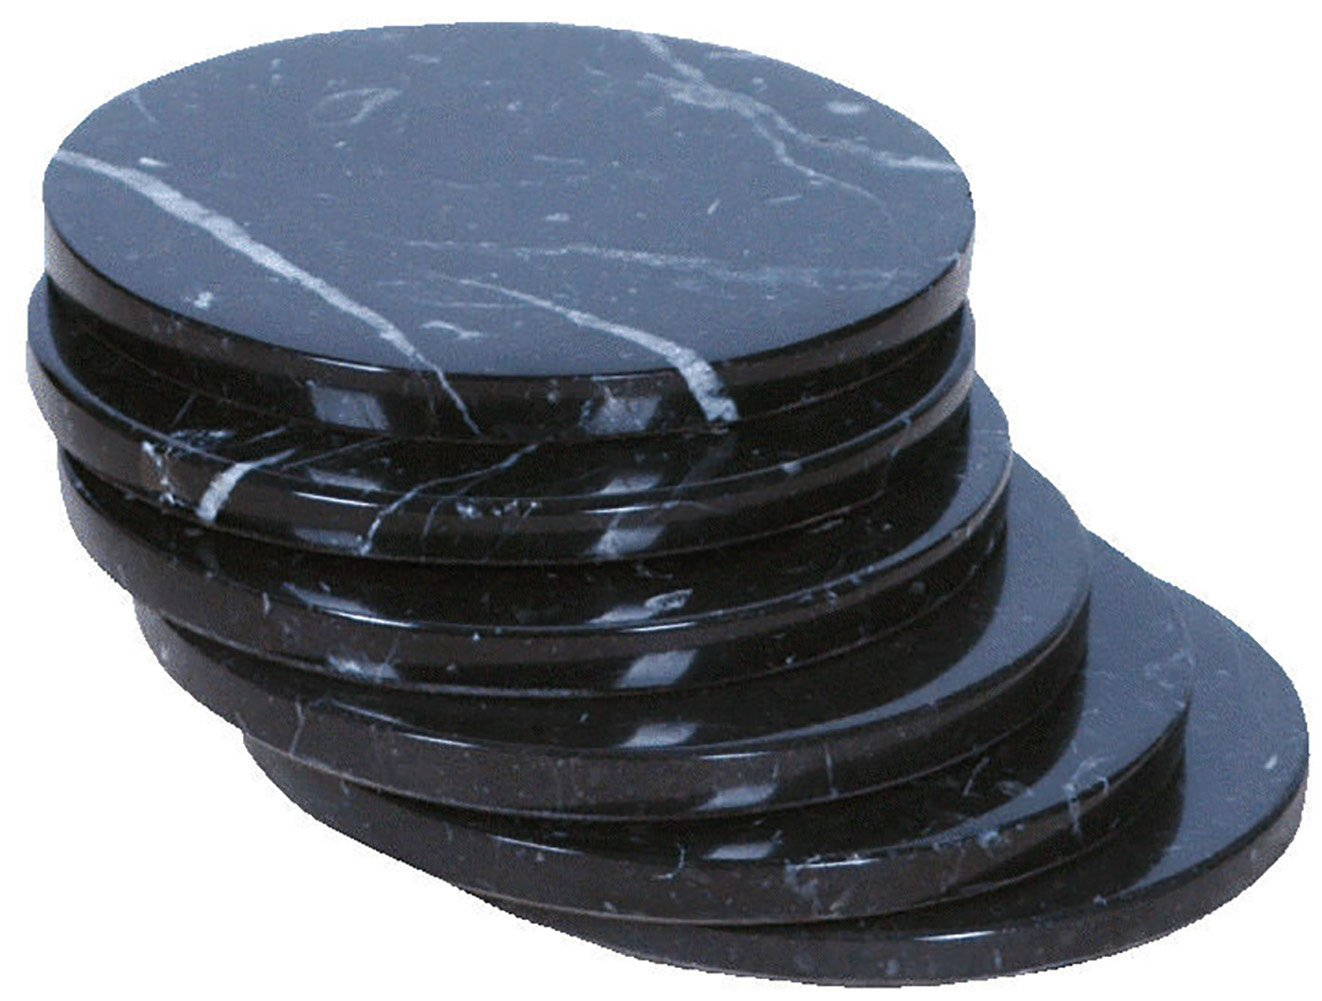 """Custom & Cool {3.5"""" x 3.5"""" Inches} Set Pack of 6 Round """"Flat & Smooth Texture"""" Drink Cup Coasters Made of Stone w/ Felt Bottom & Natural Stone Fancy Midnight Marble Design [Colorful Black & White]"""